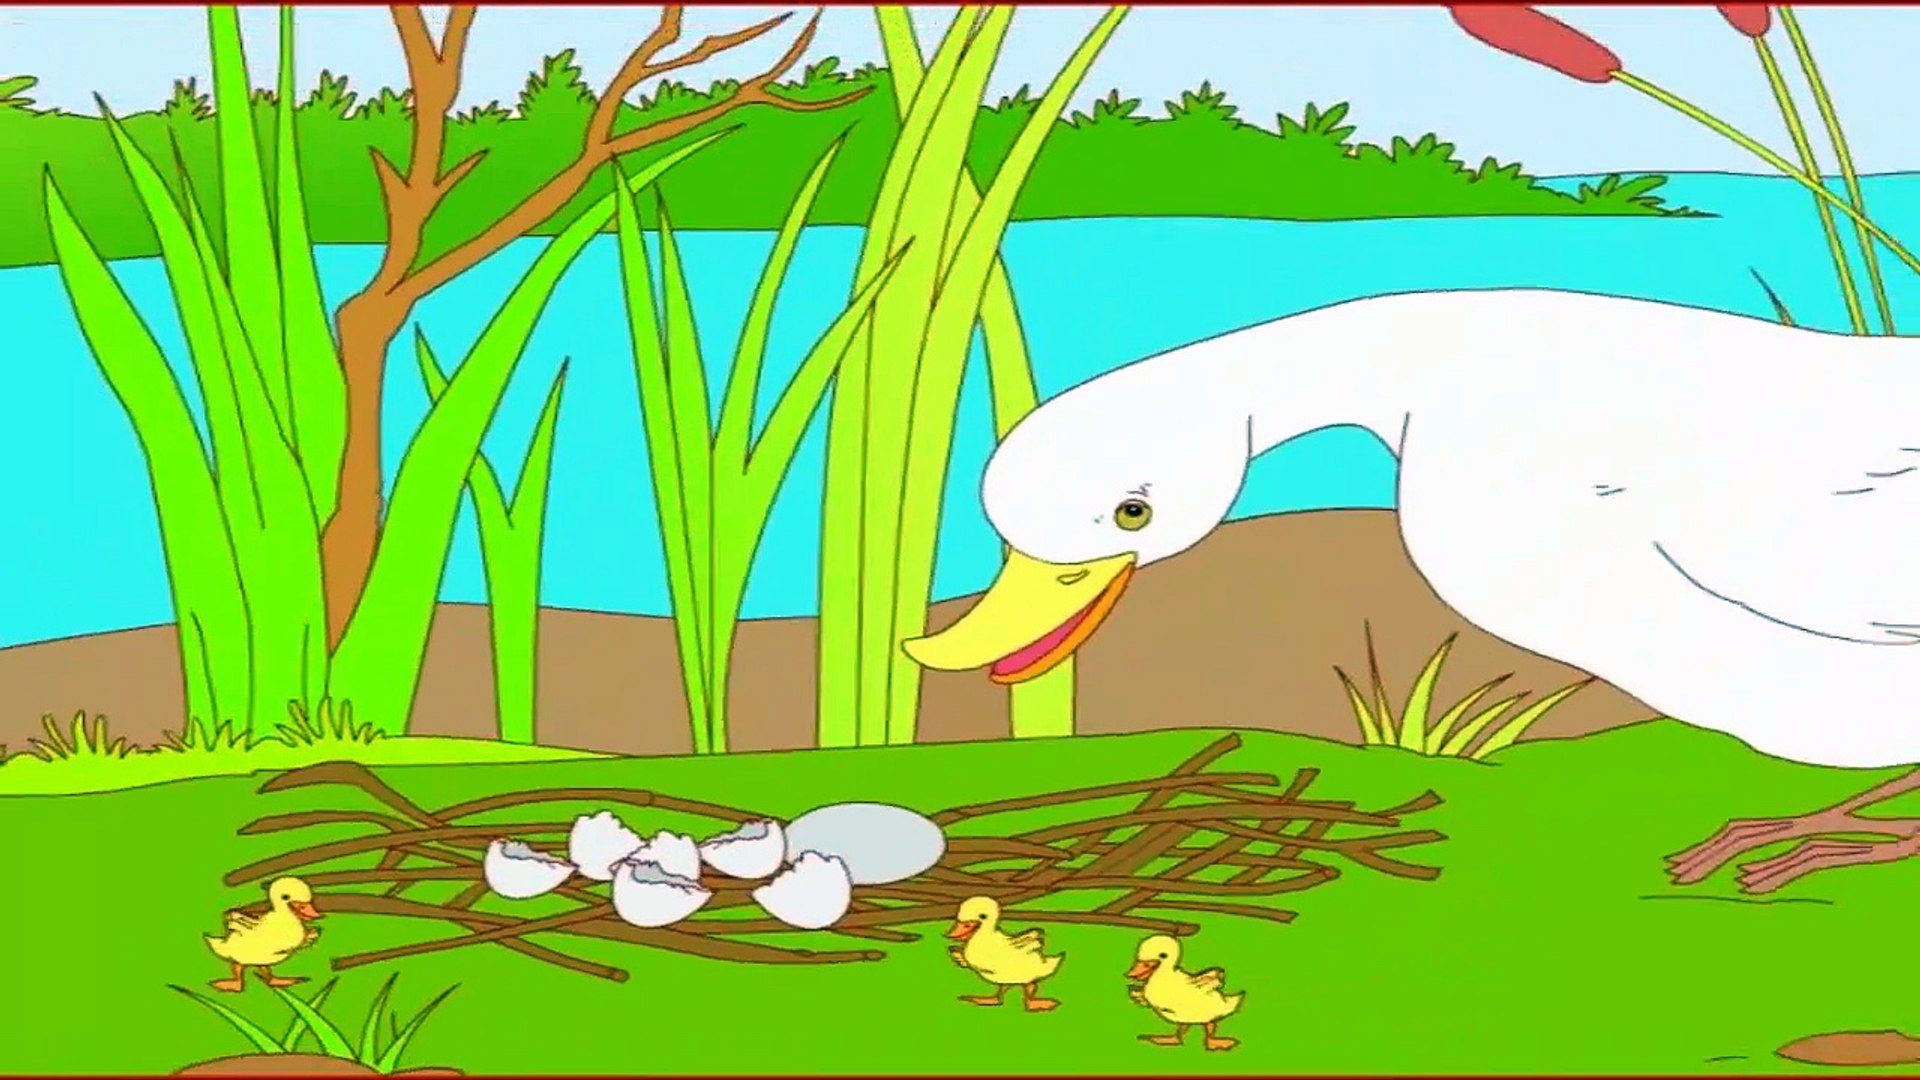 The Ugly Duckling ## Animated Short Story - Fairy Tale For Kids Education